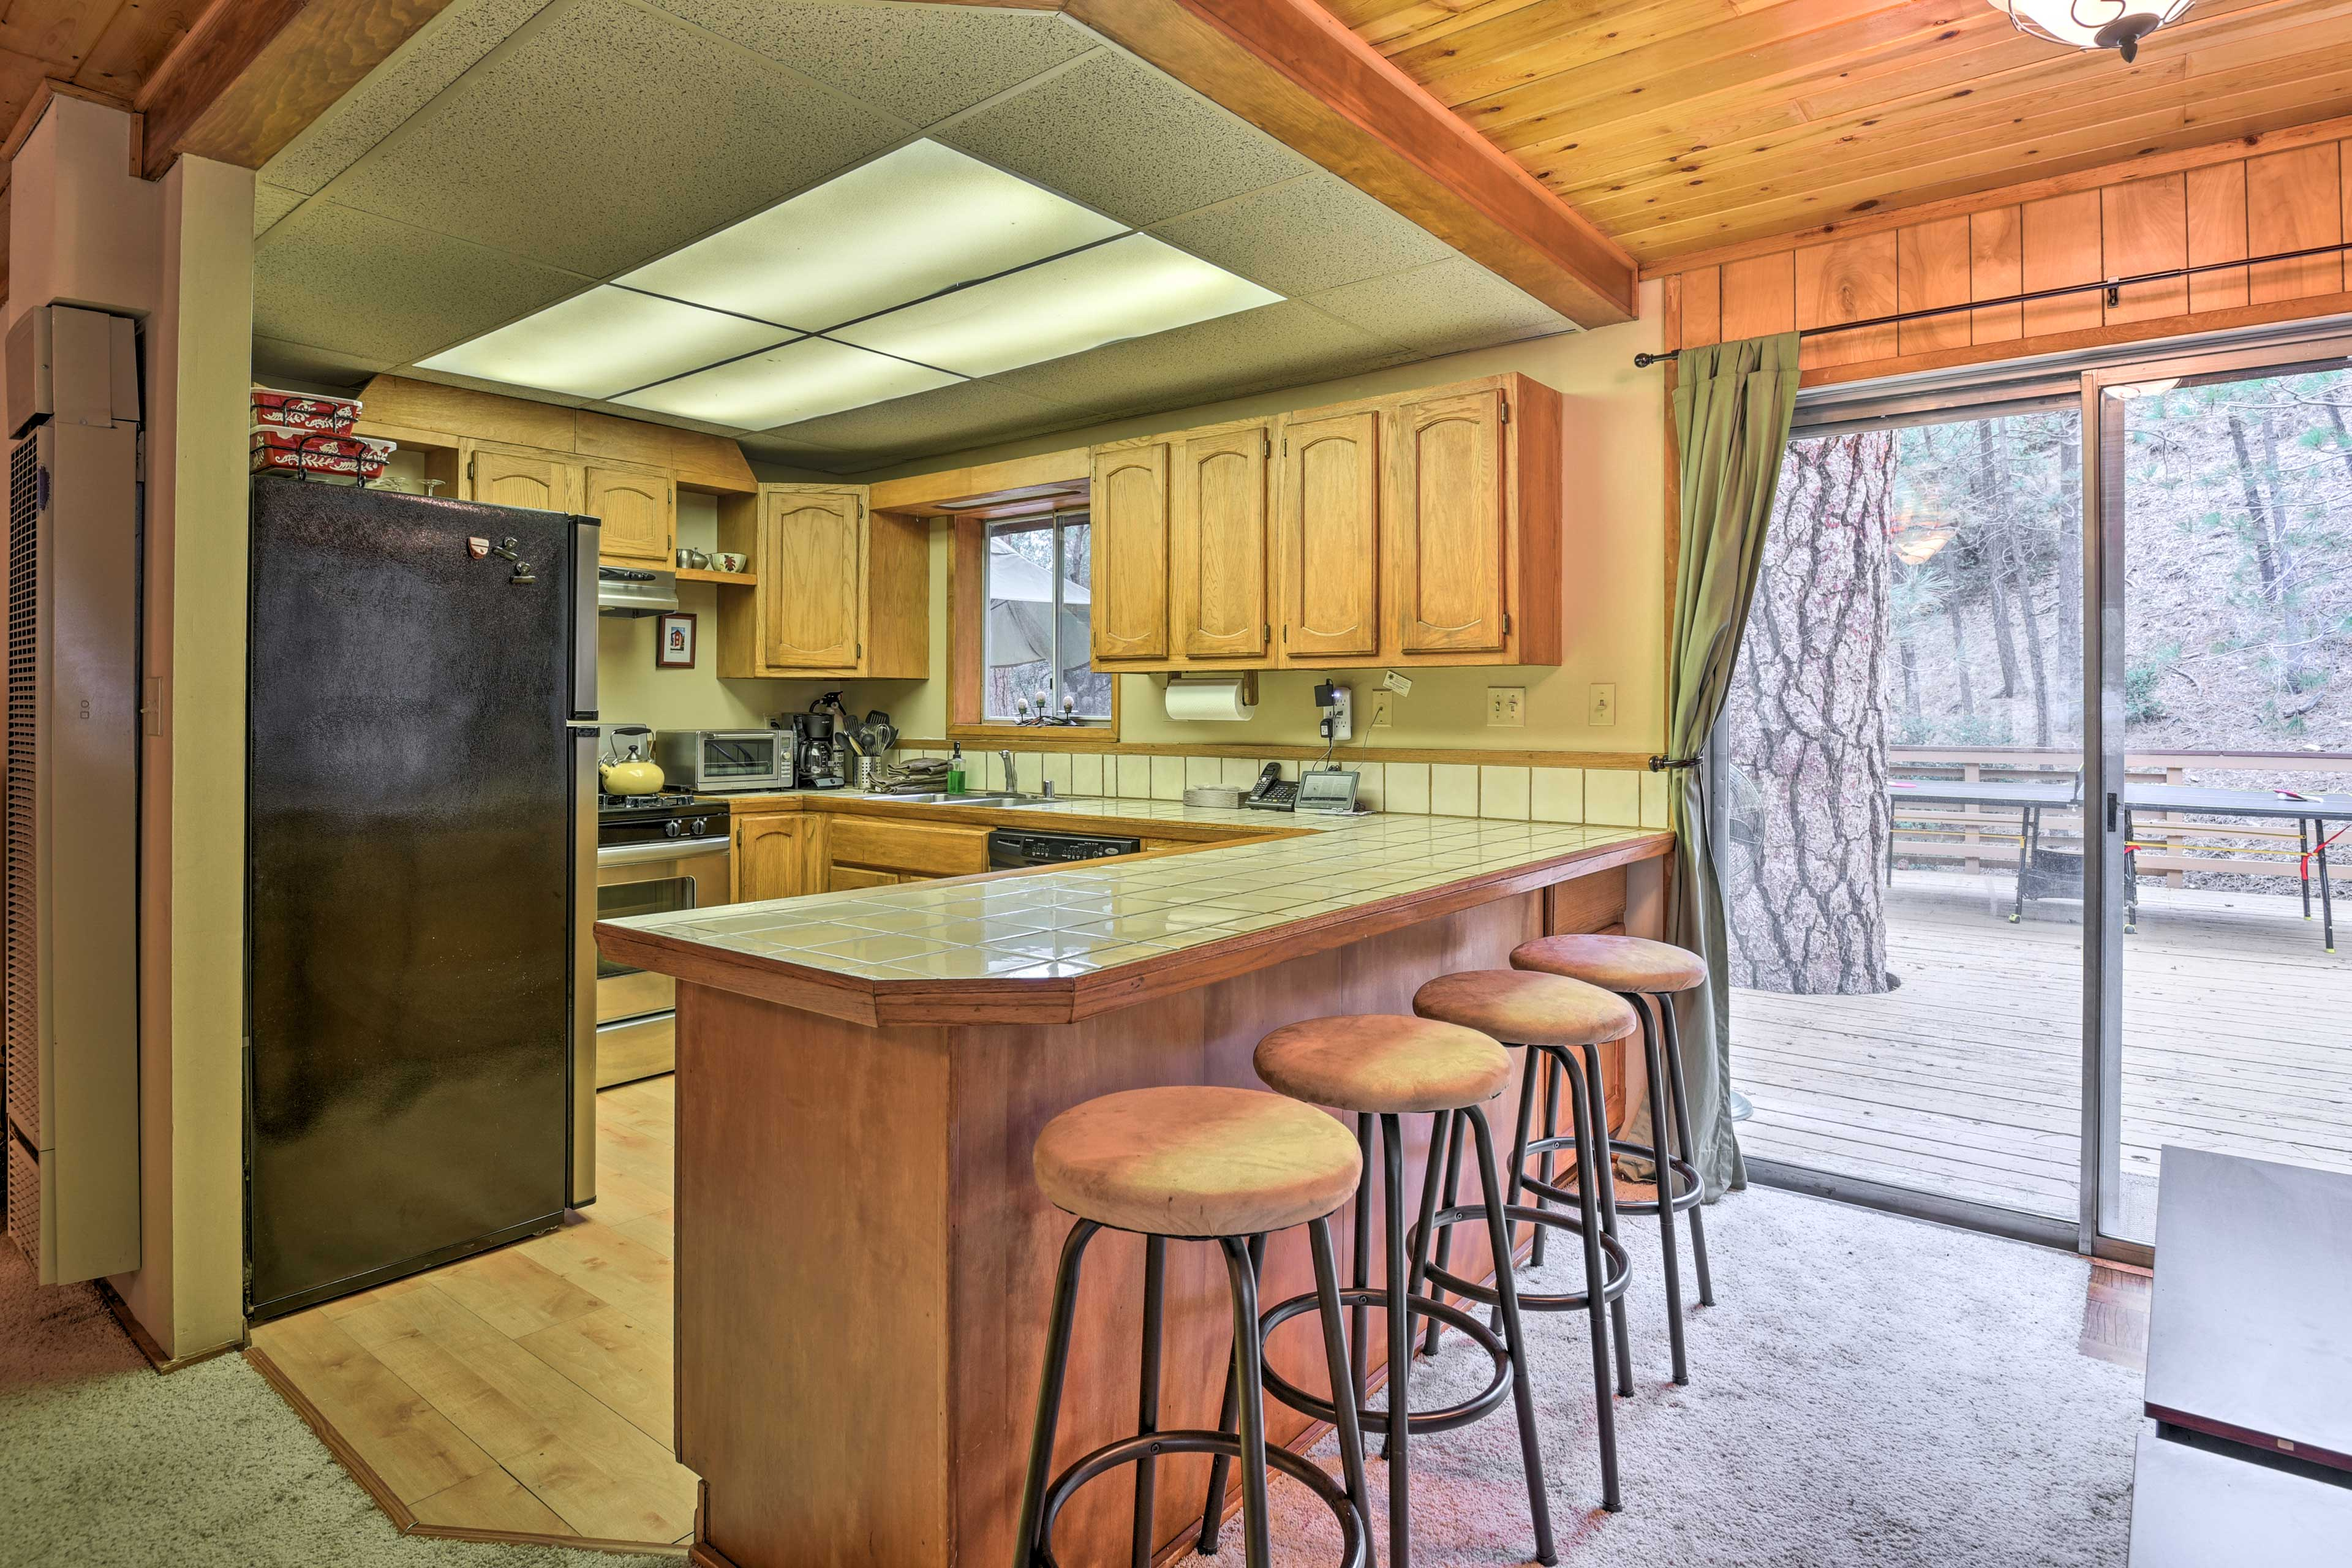 The fully equipped kitchen makes cooking a breeze.